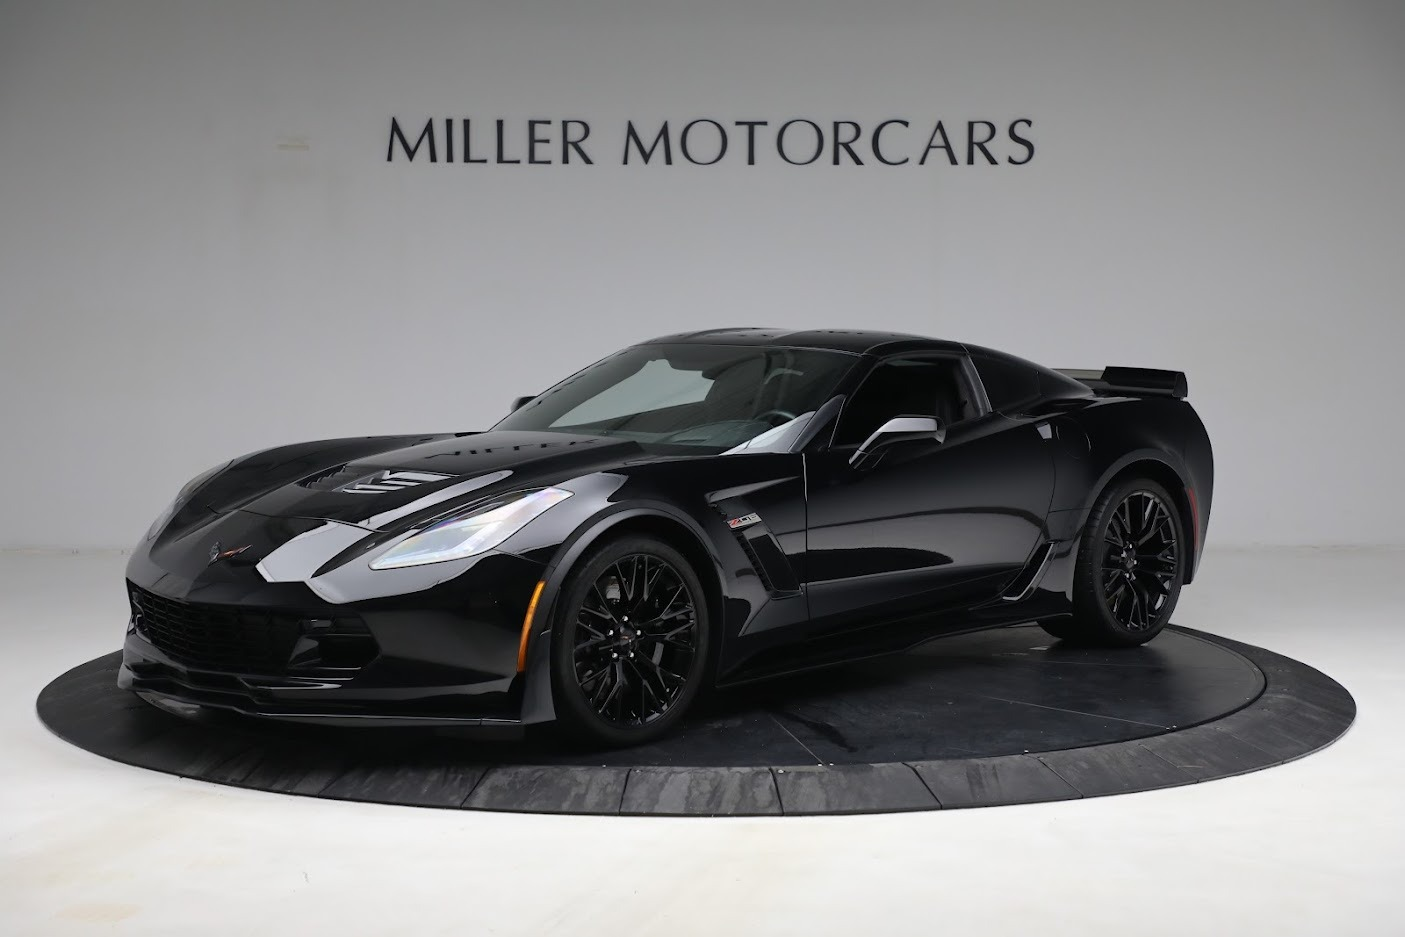 Used 2016 Chevrolet Corvette Z06 for sale $85,900 at Bentley Greenwich in Greenwich CT 06830 1